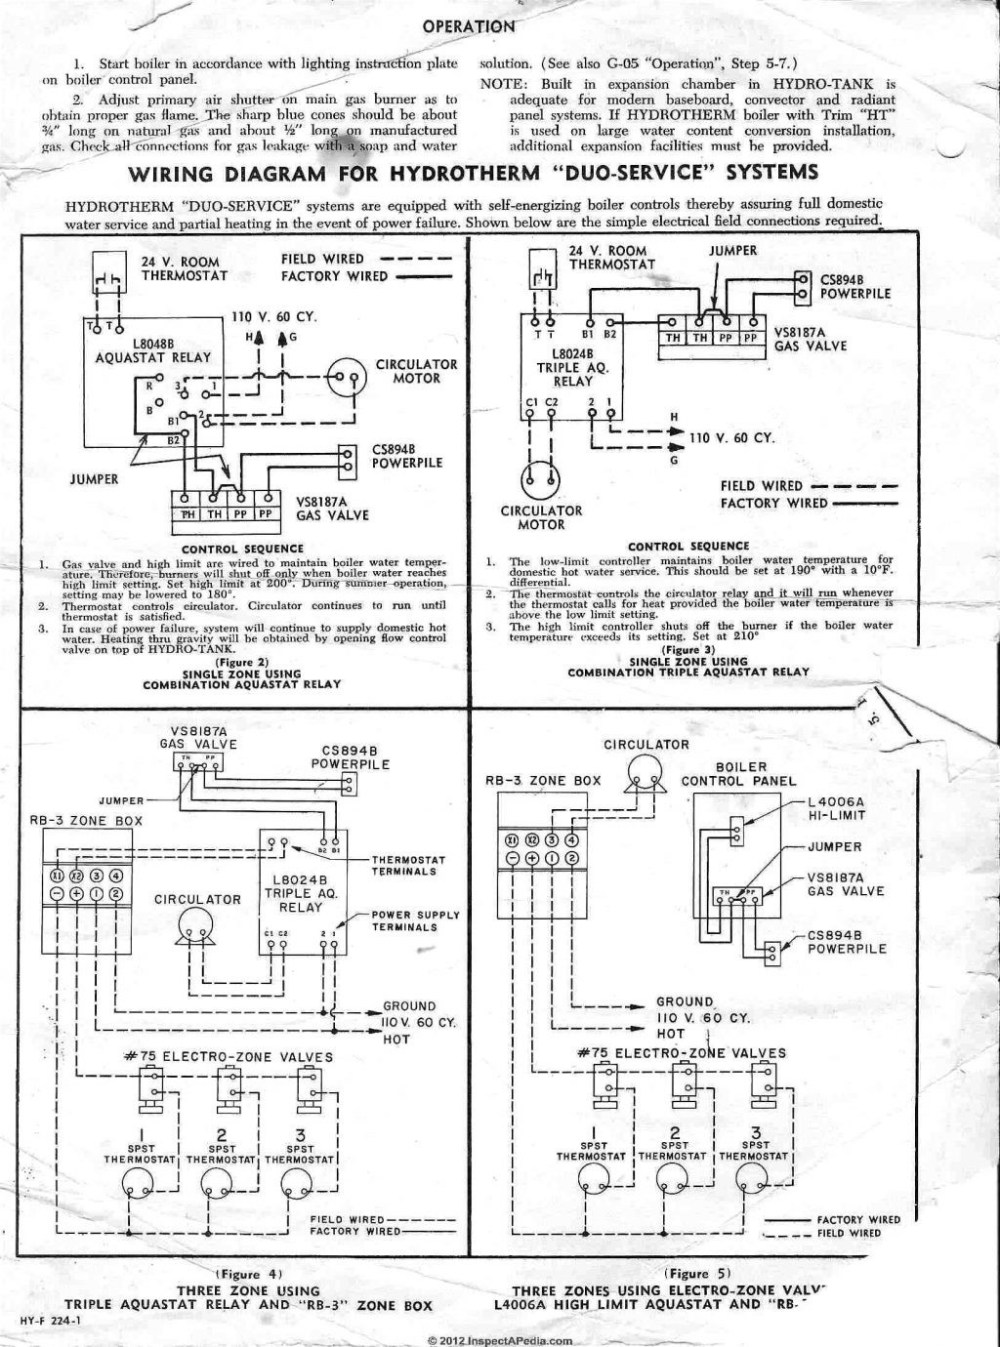 medium resolution of honeywell r845a aquastat diagram schematics wiring diagrams u2022 honeywell aquastat relay wiring honeywell r845a relay